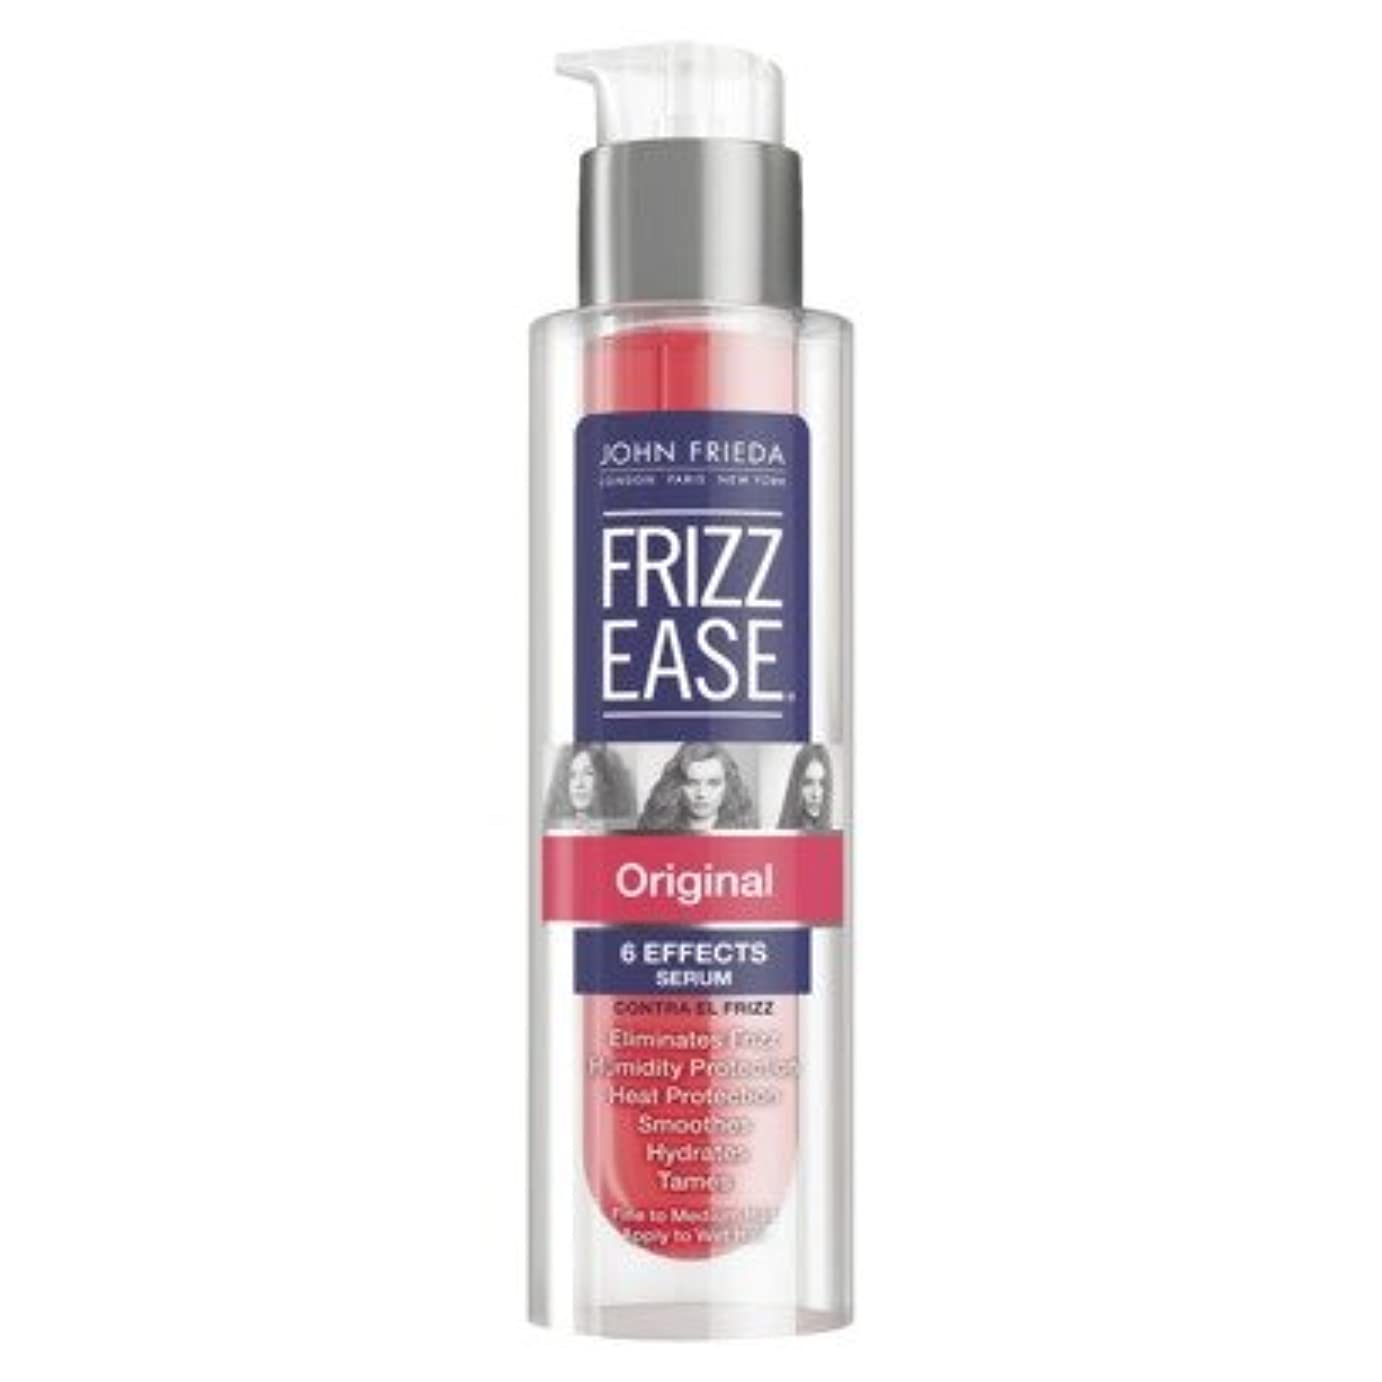 とは異なり予感ワイヤーJohn Frieda Frizz-Ease Hair Serum, Original Formula - 1.69 fl oz (49ml)